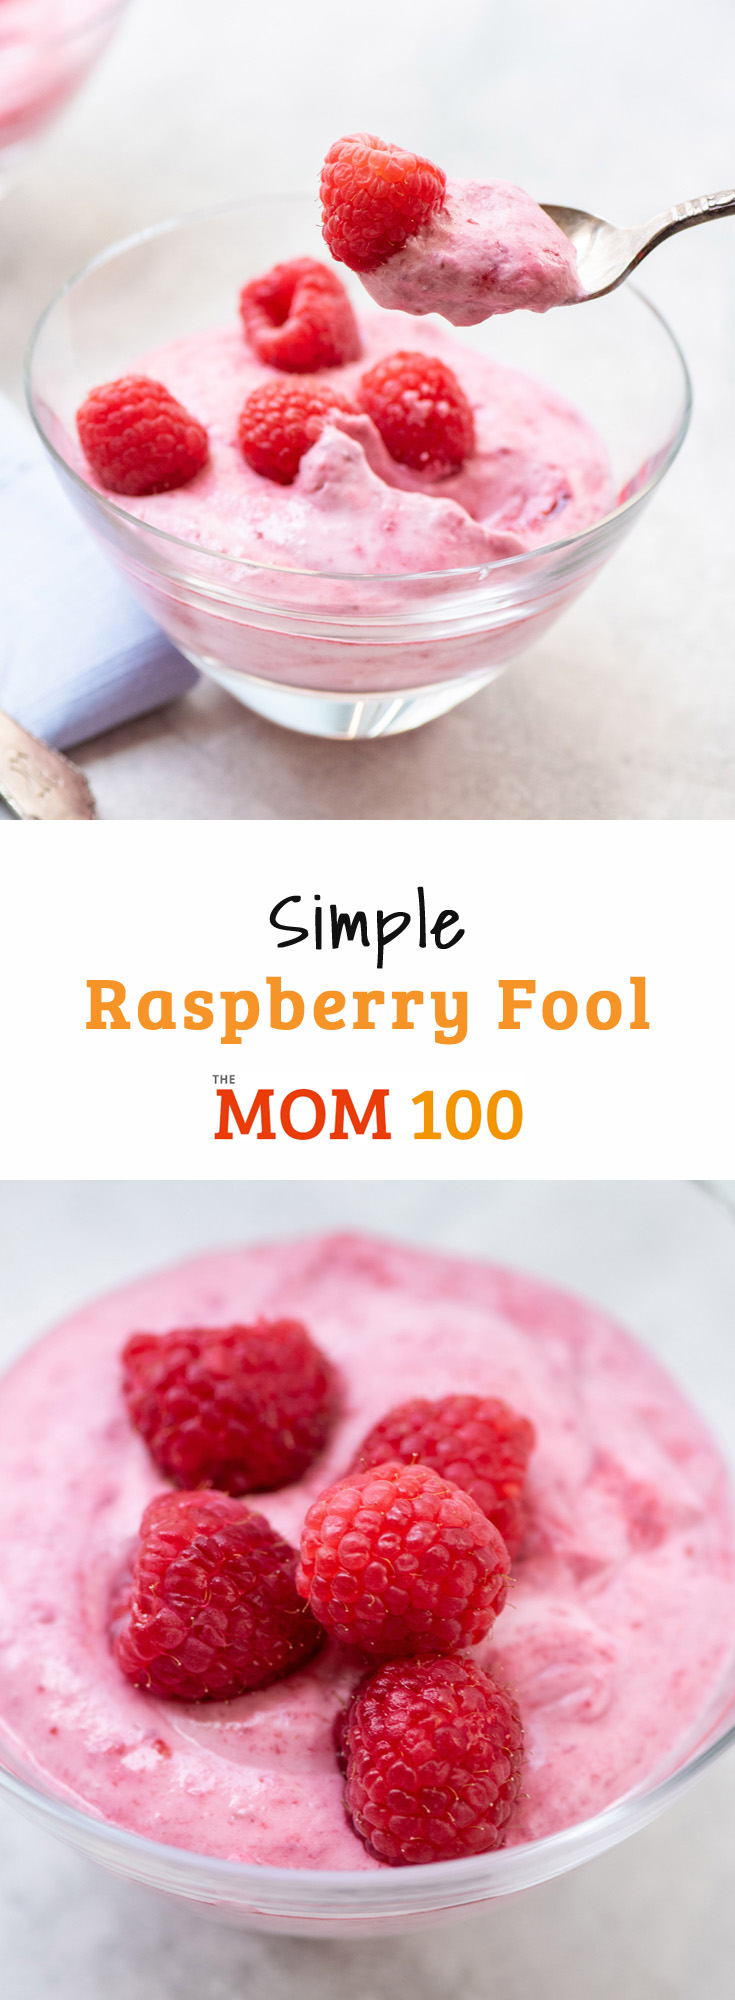 Simple Raspberry Fool: A simple, pretty, 4-ingredient summer dessert that doesn't require turning on the oven - now that's beautiful.